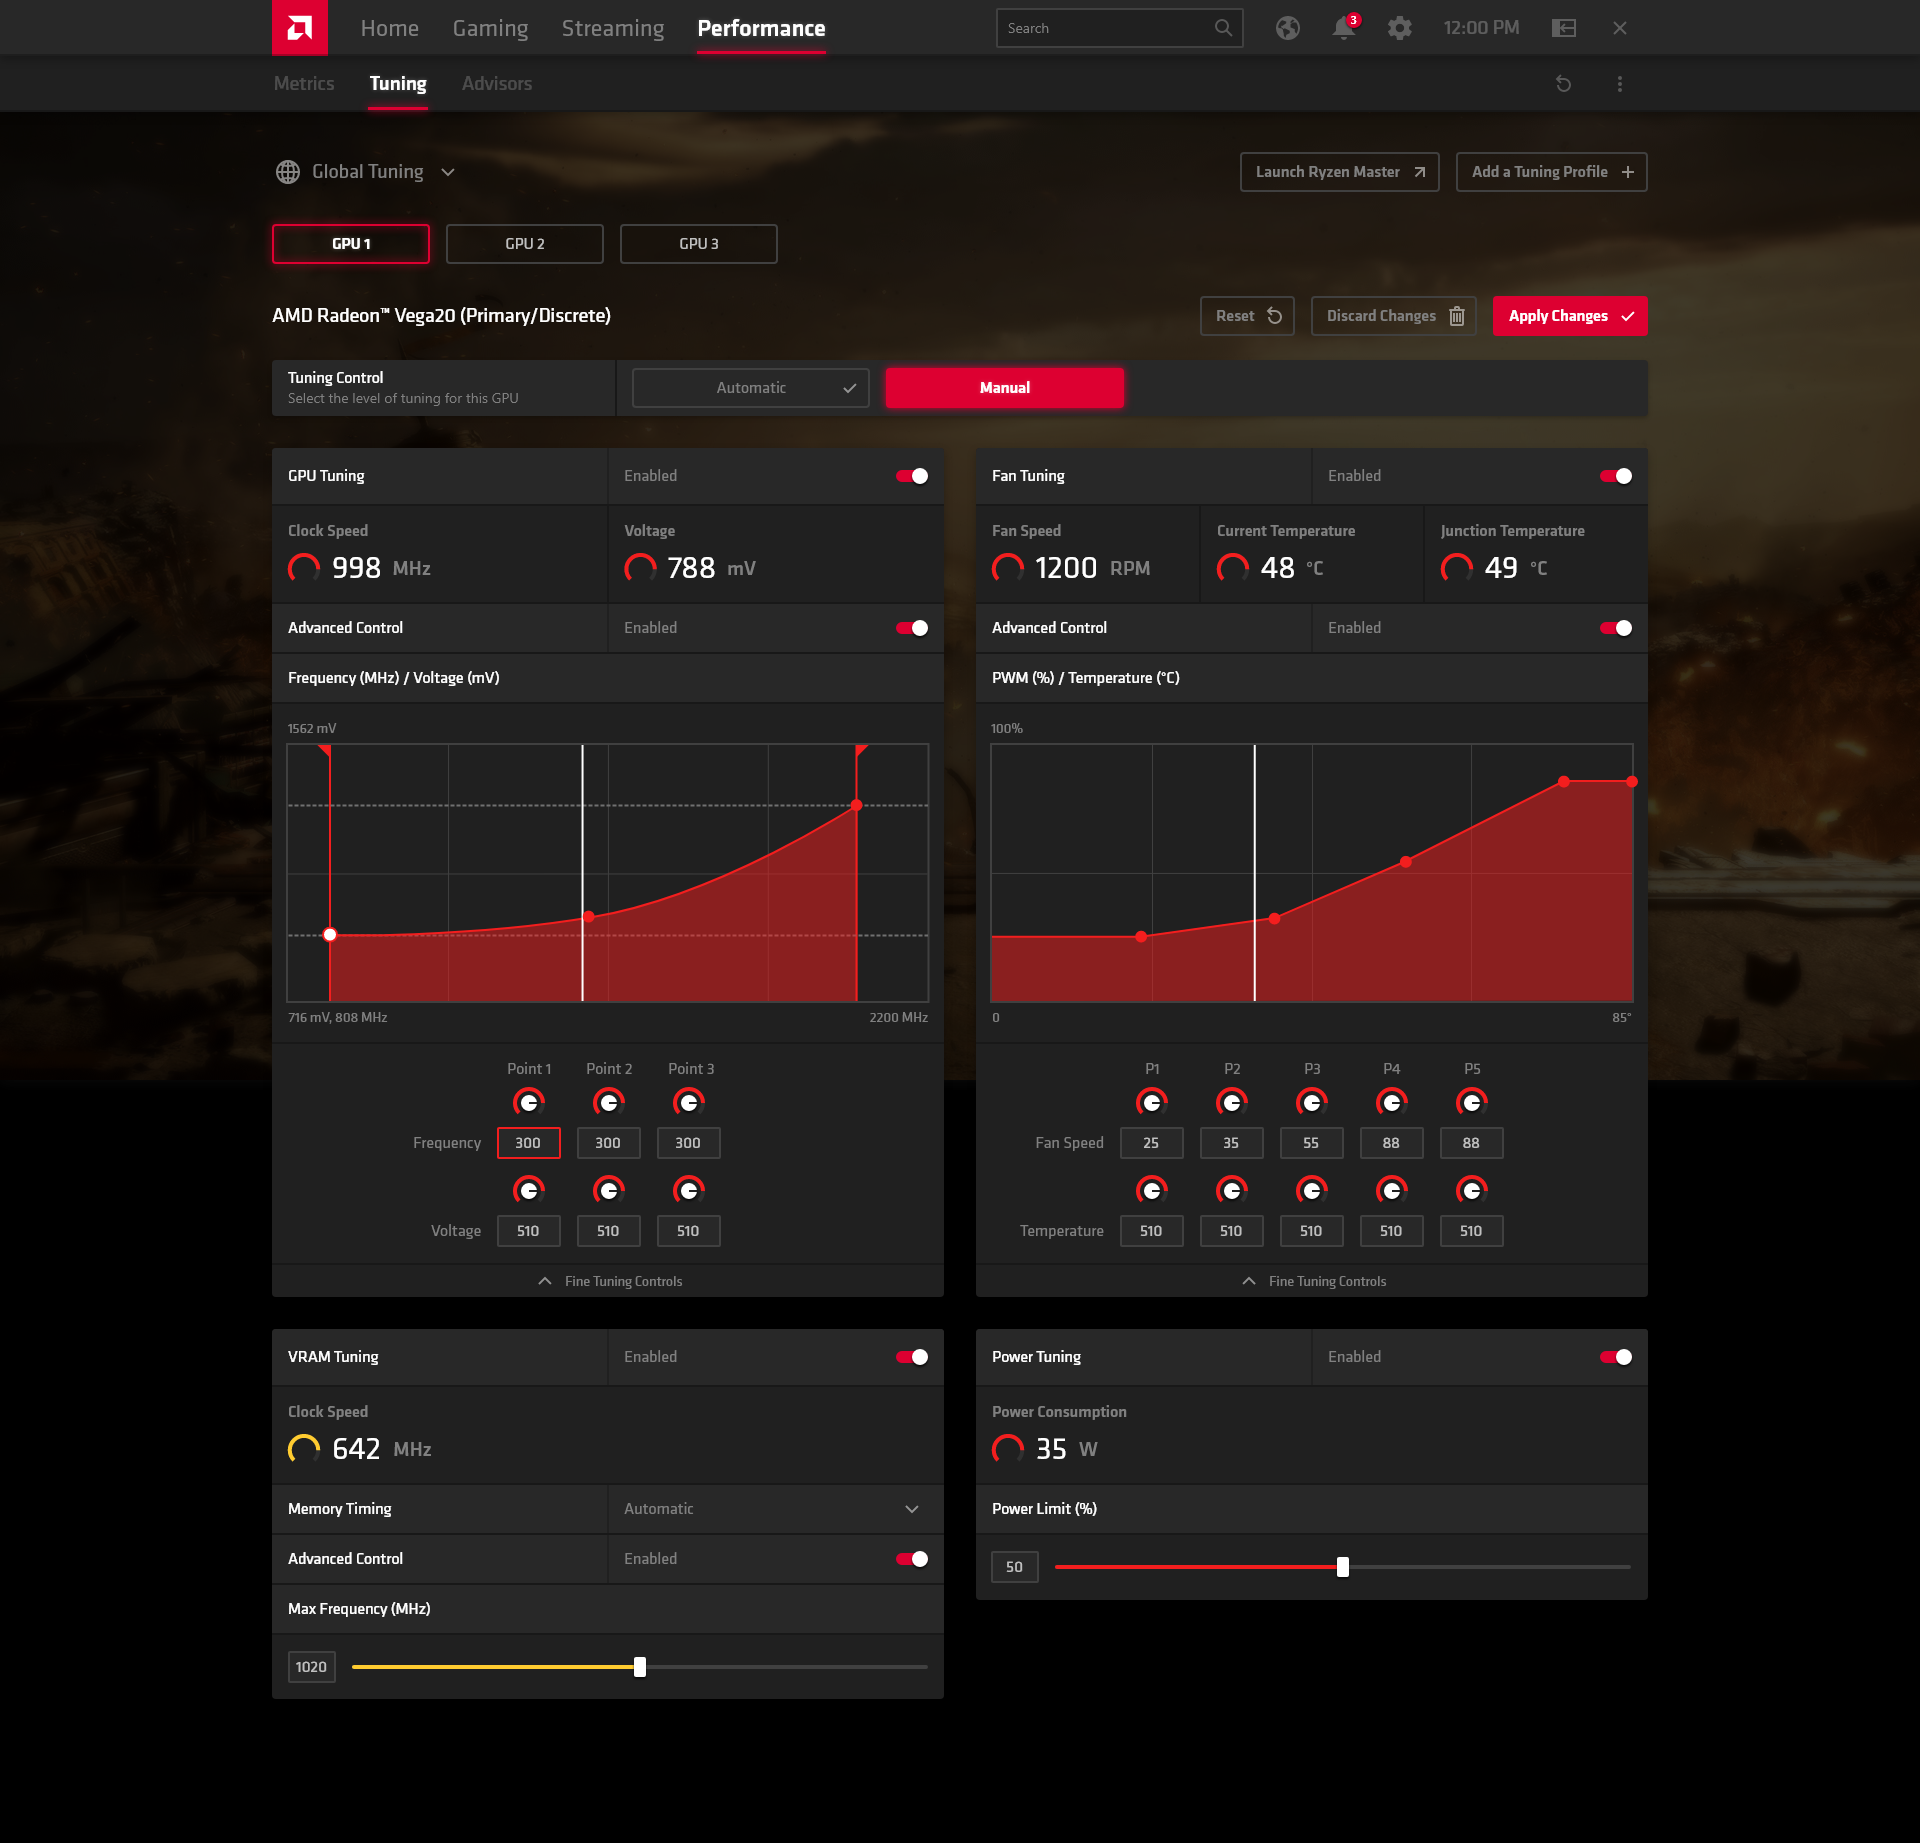 Amd S Adrenalin 2020 Update Wants To Be Your All In One Game Launcher Rock Paper Shotgun